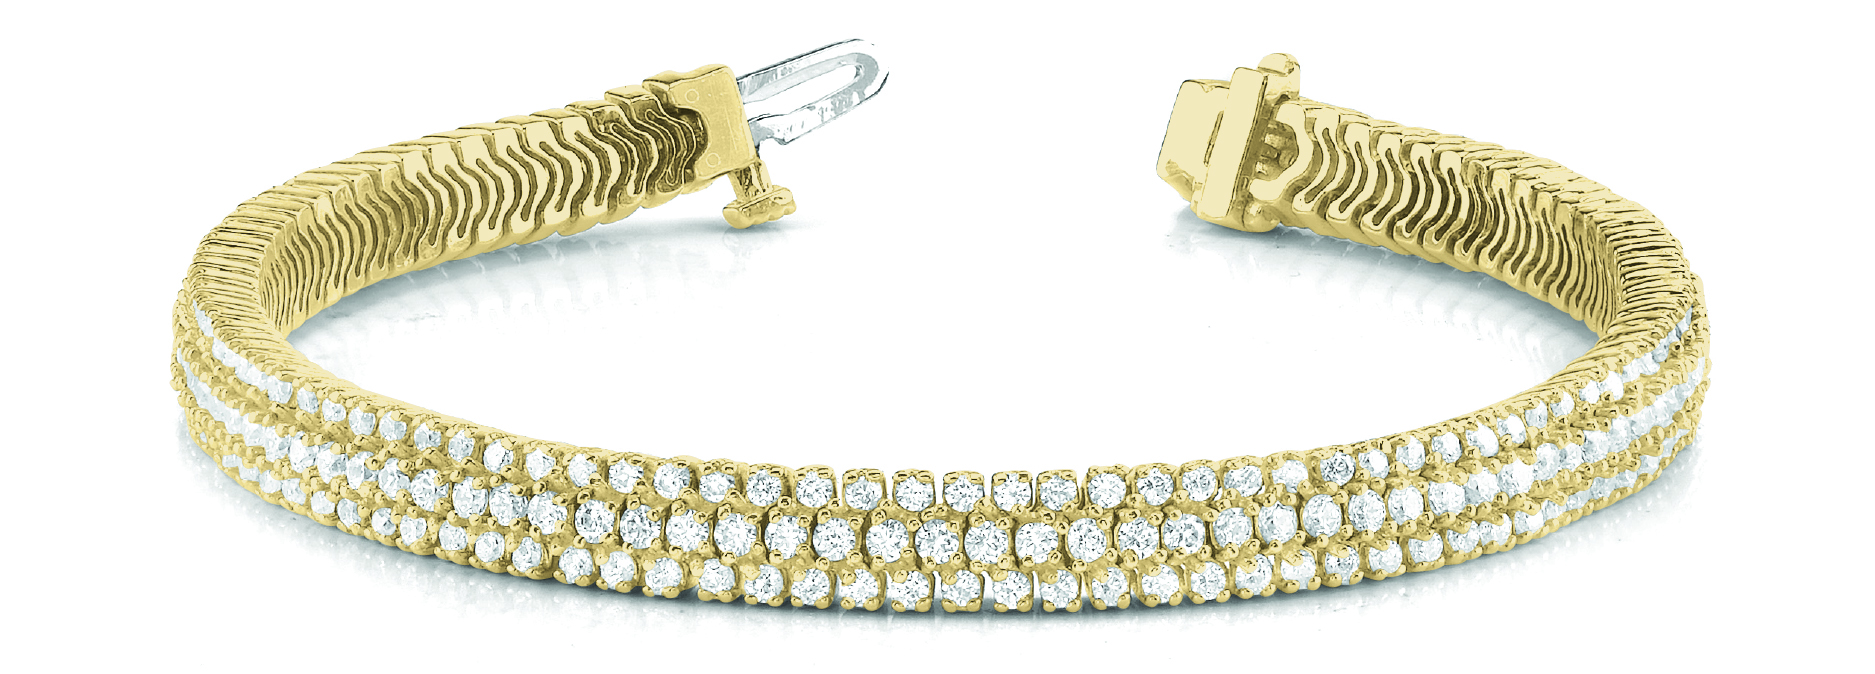 Multi Row Etoil Round Diamond Bracelet Yellow Gold 5 Ct.